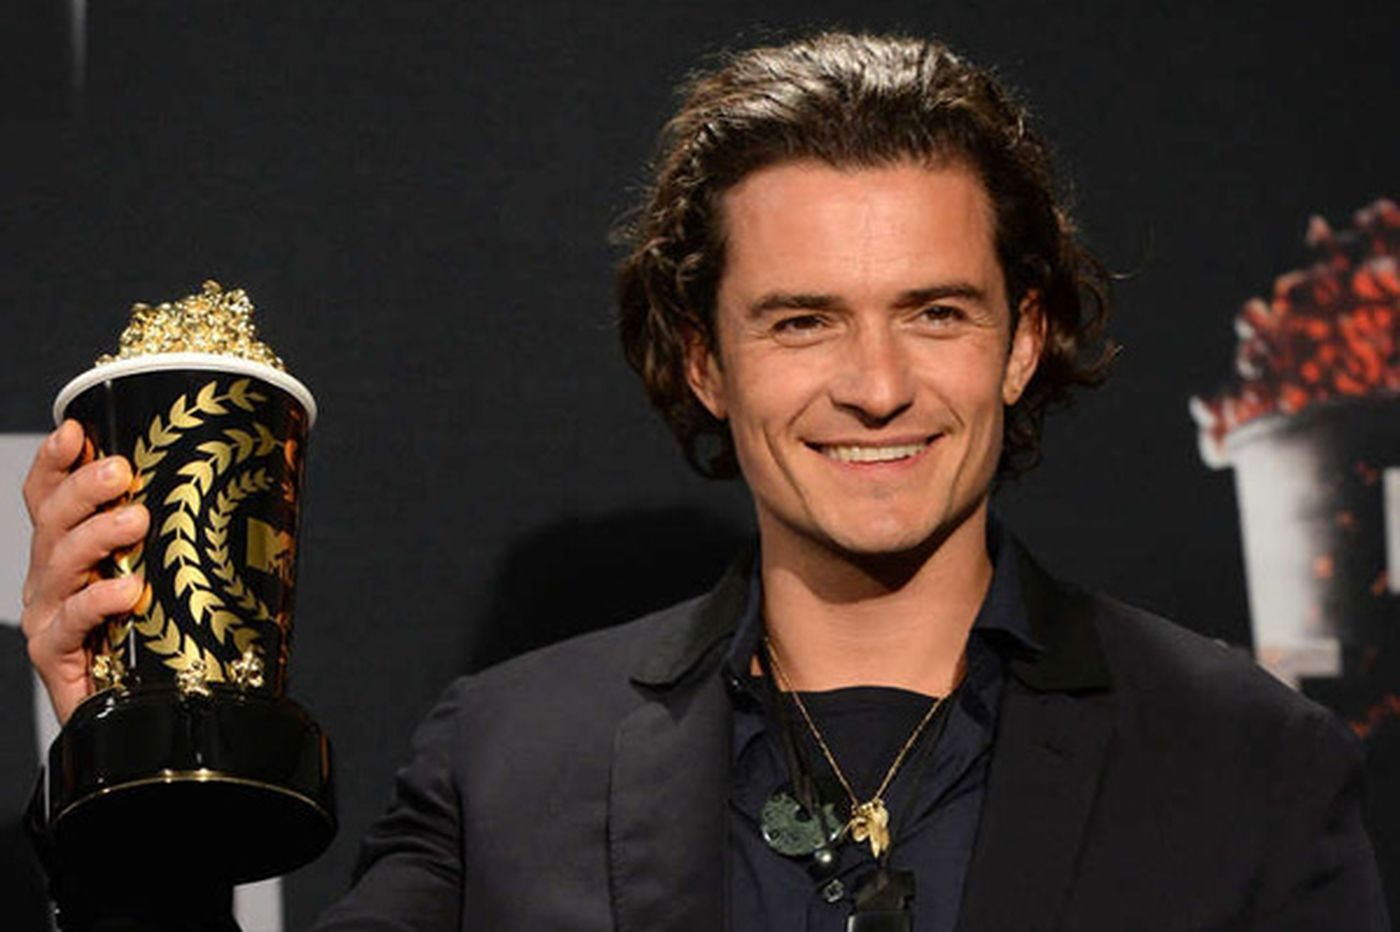 Sideshow: Orlando Bloom helps downtrodden, punches out girls